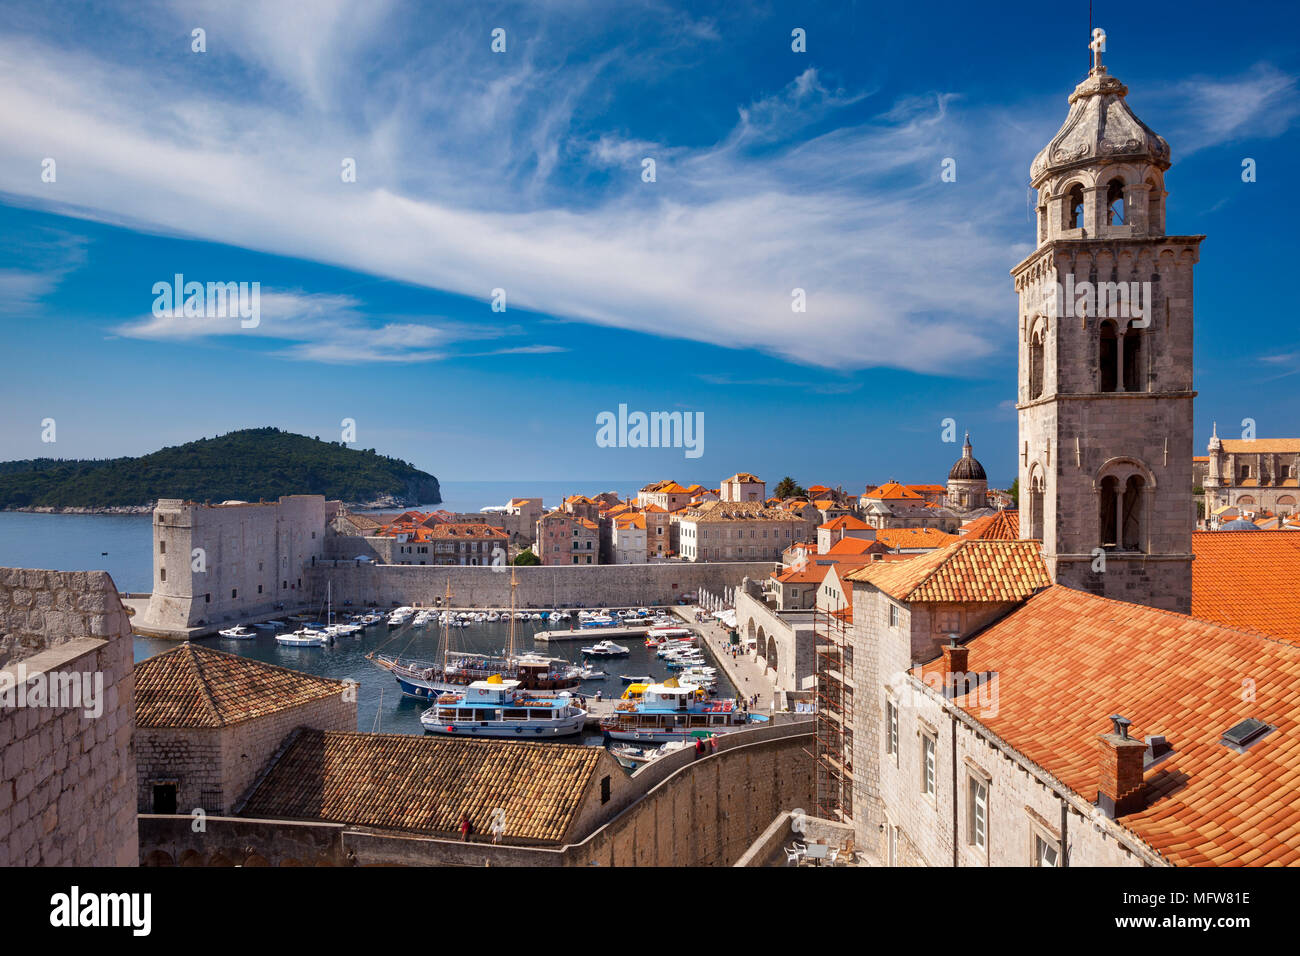 Church tower of Dominikanski Samostan (Dominican Monastery) and the orange-tiled roofs of old town Dubrovnik, Croatia - Stock Image